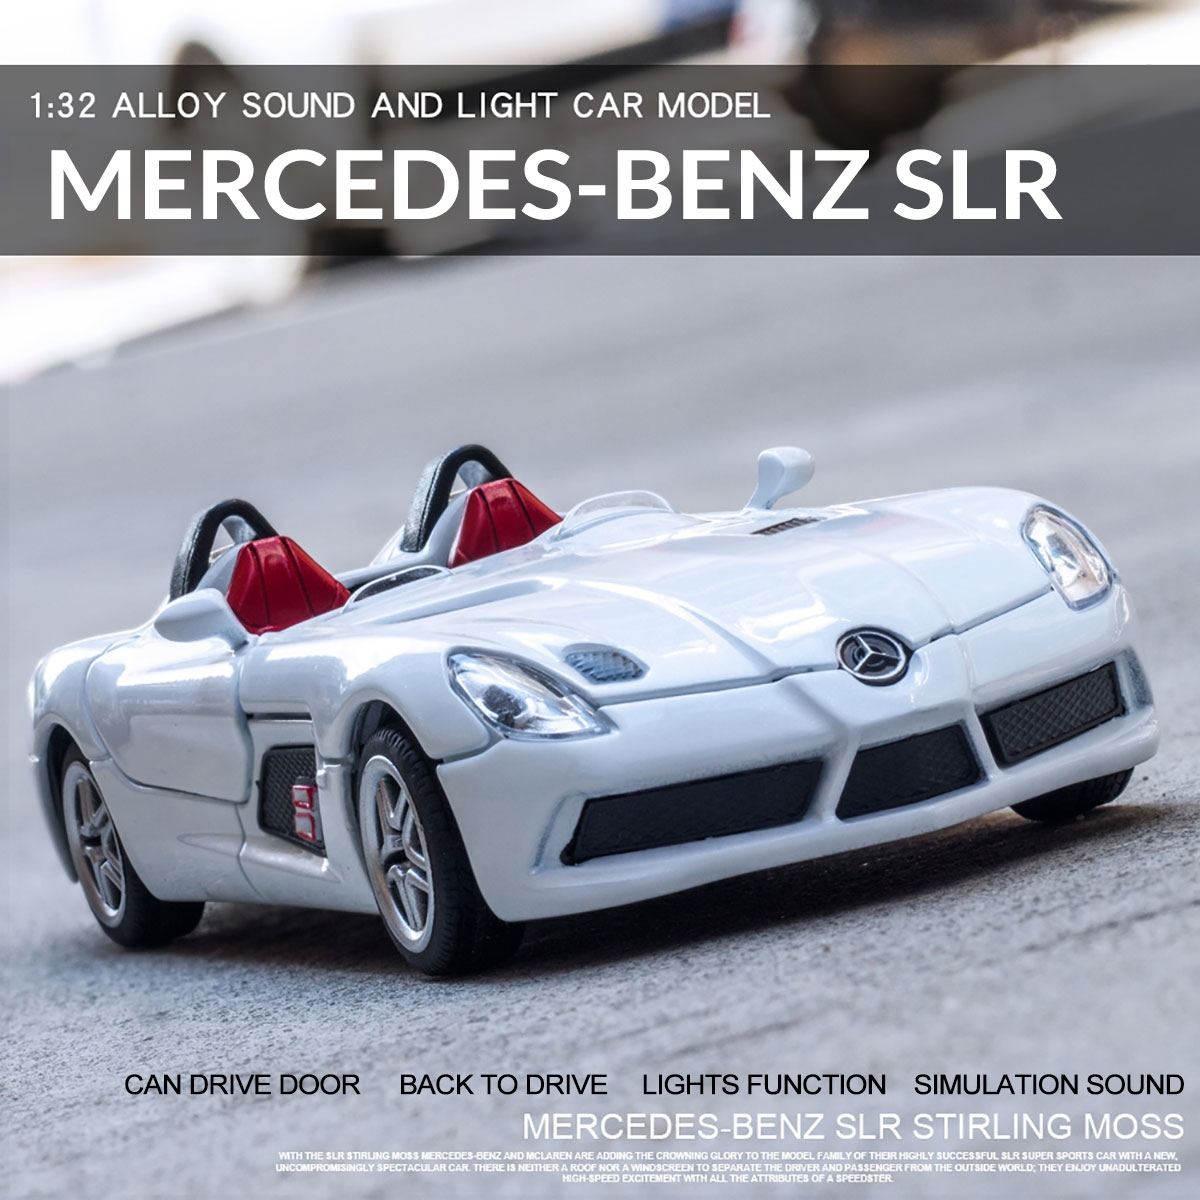 1:32 Alloy Mercedes BENZS SLR Pull Back Motor Diecast Car Model Toy with Sound Light for Gift Collection